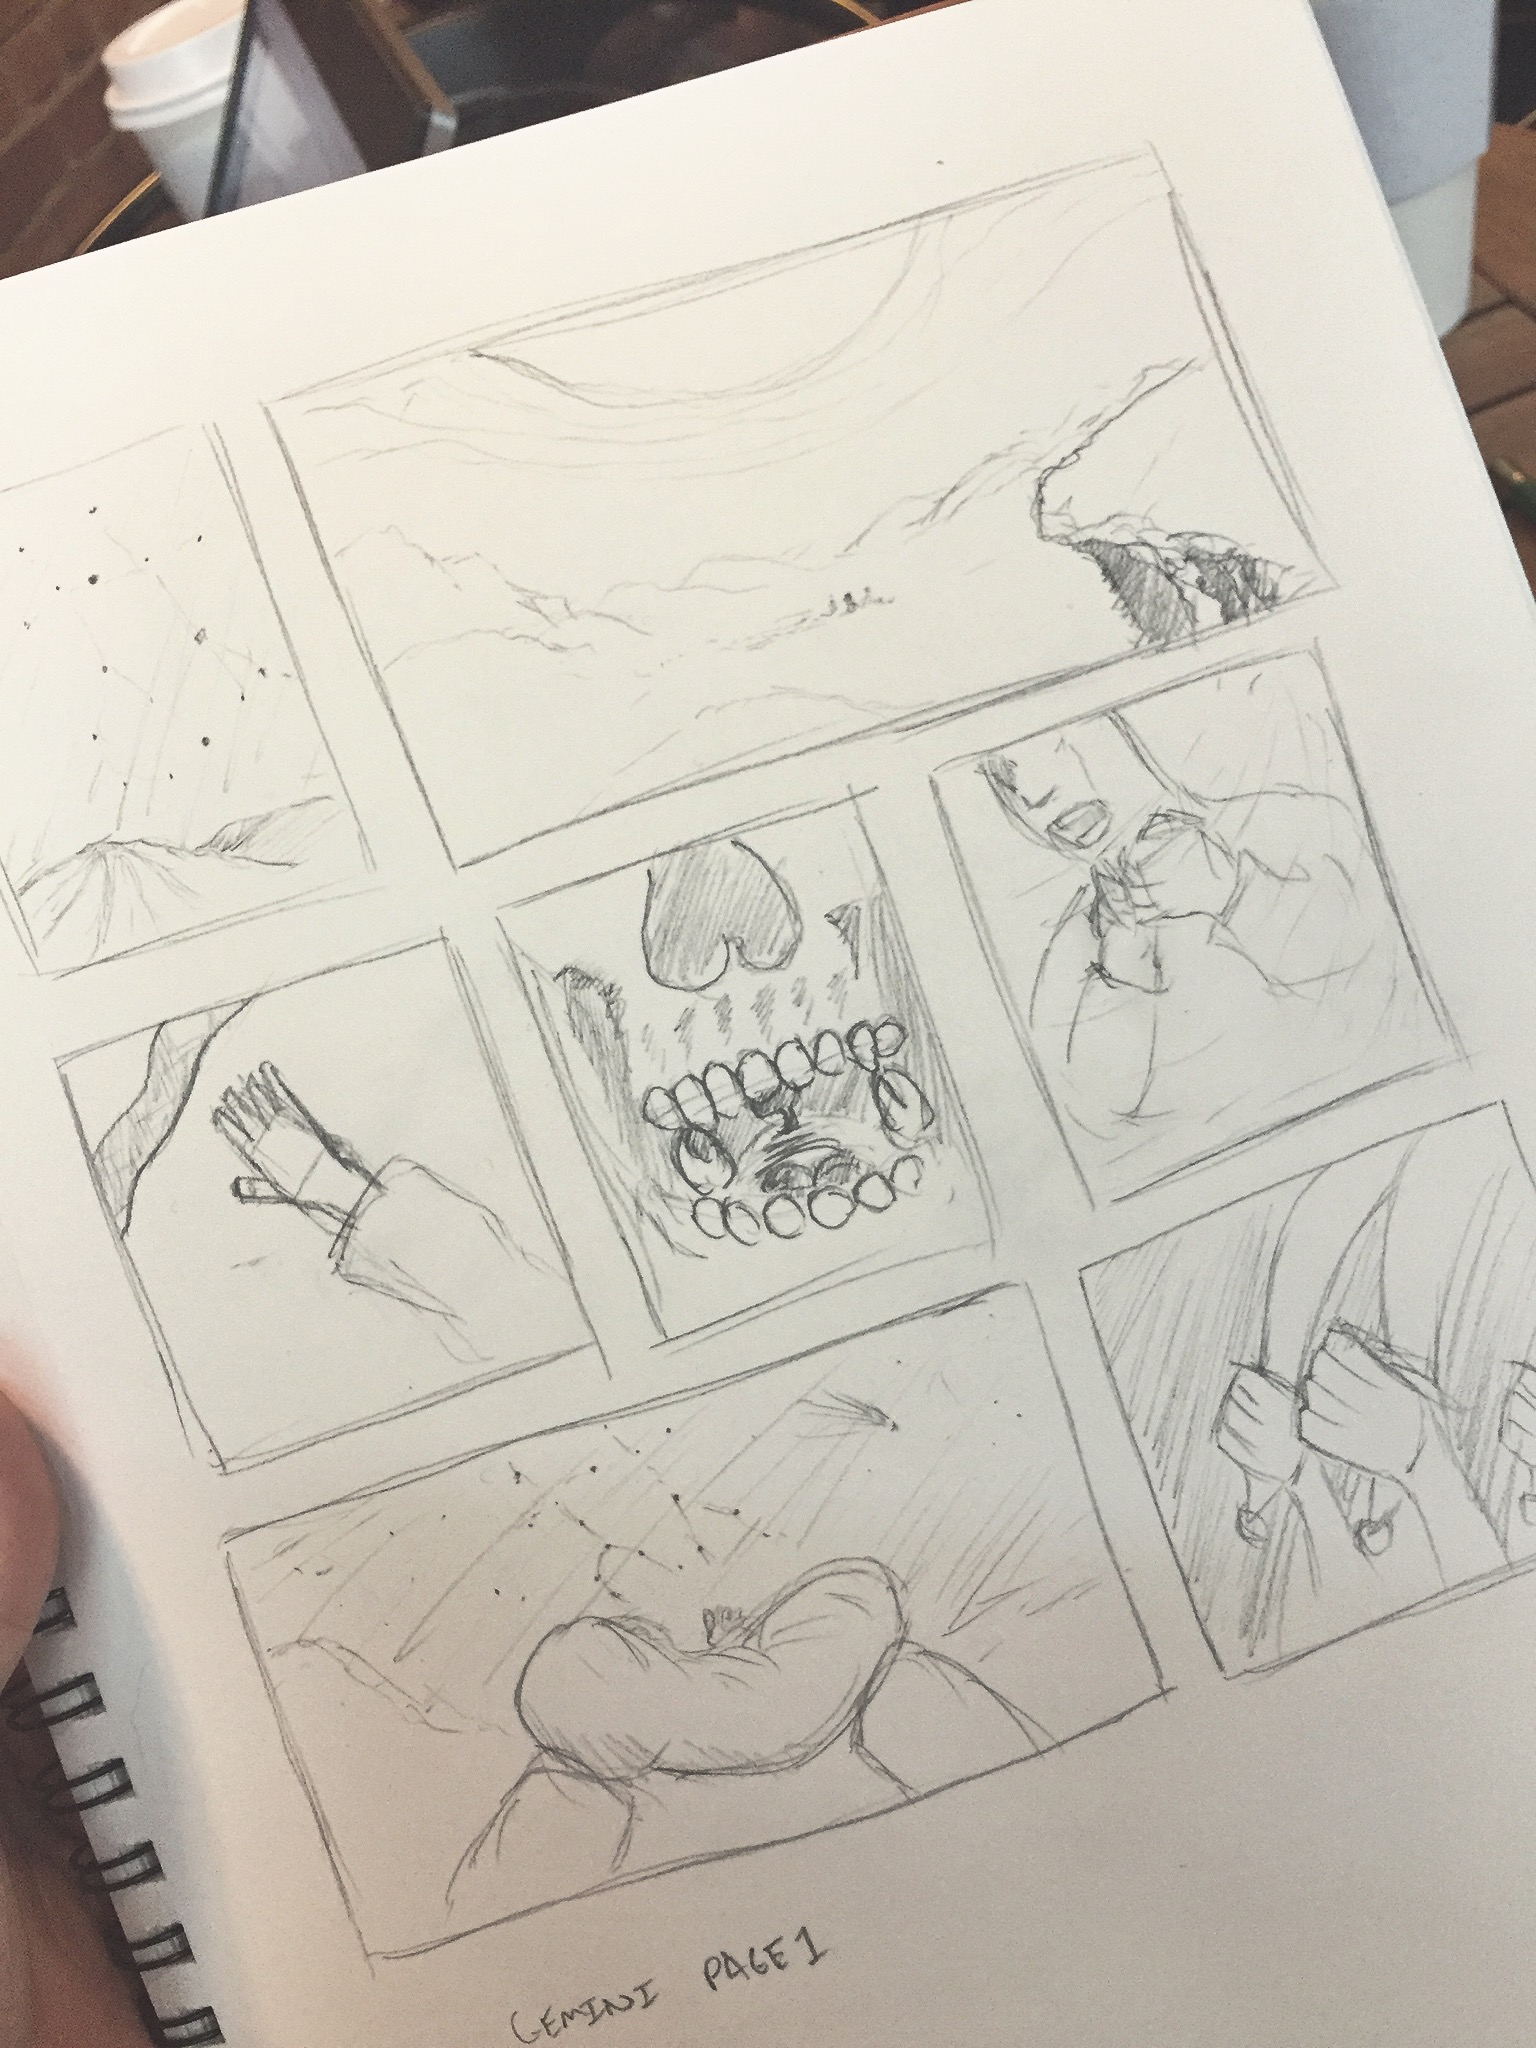 It's rough stuff, I know. Still can't be but a little proud of the first storyboard page I've ever made.